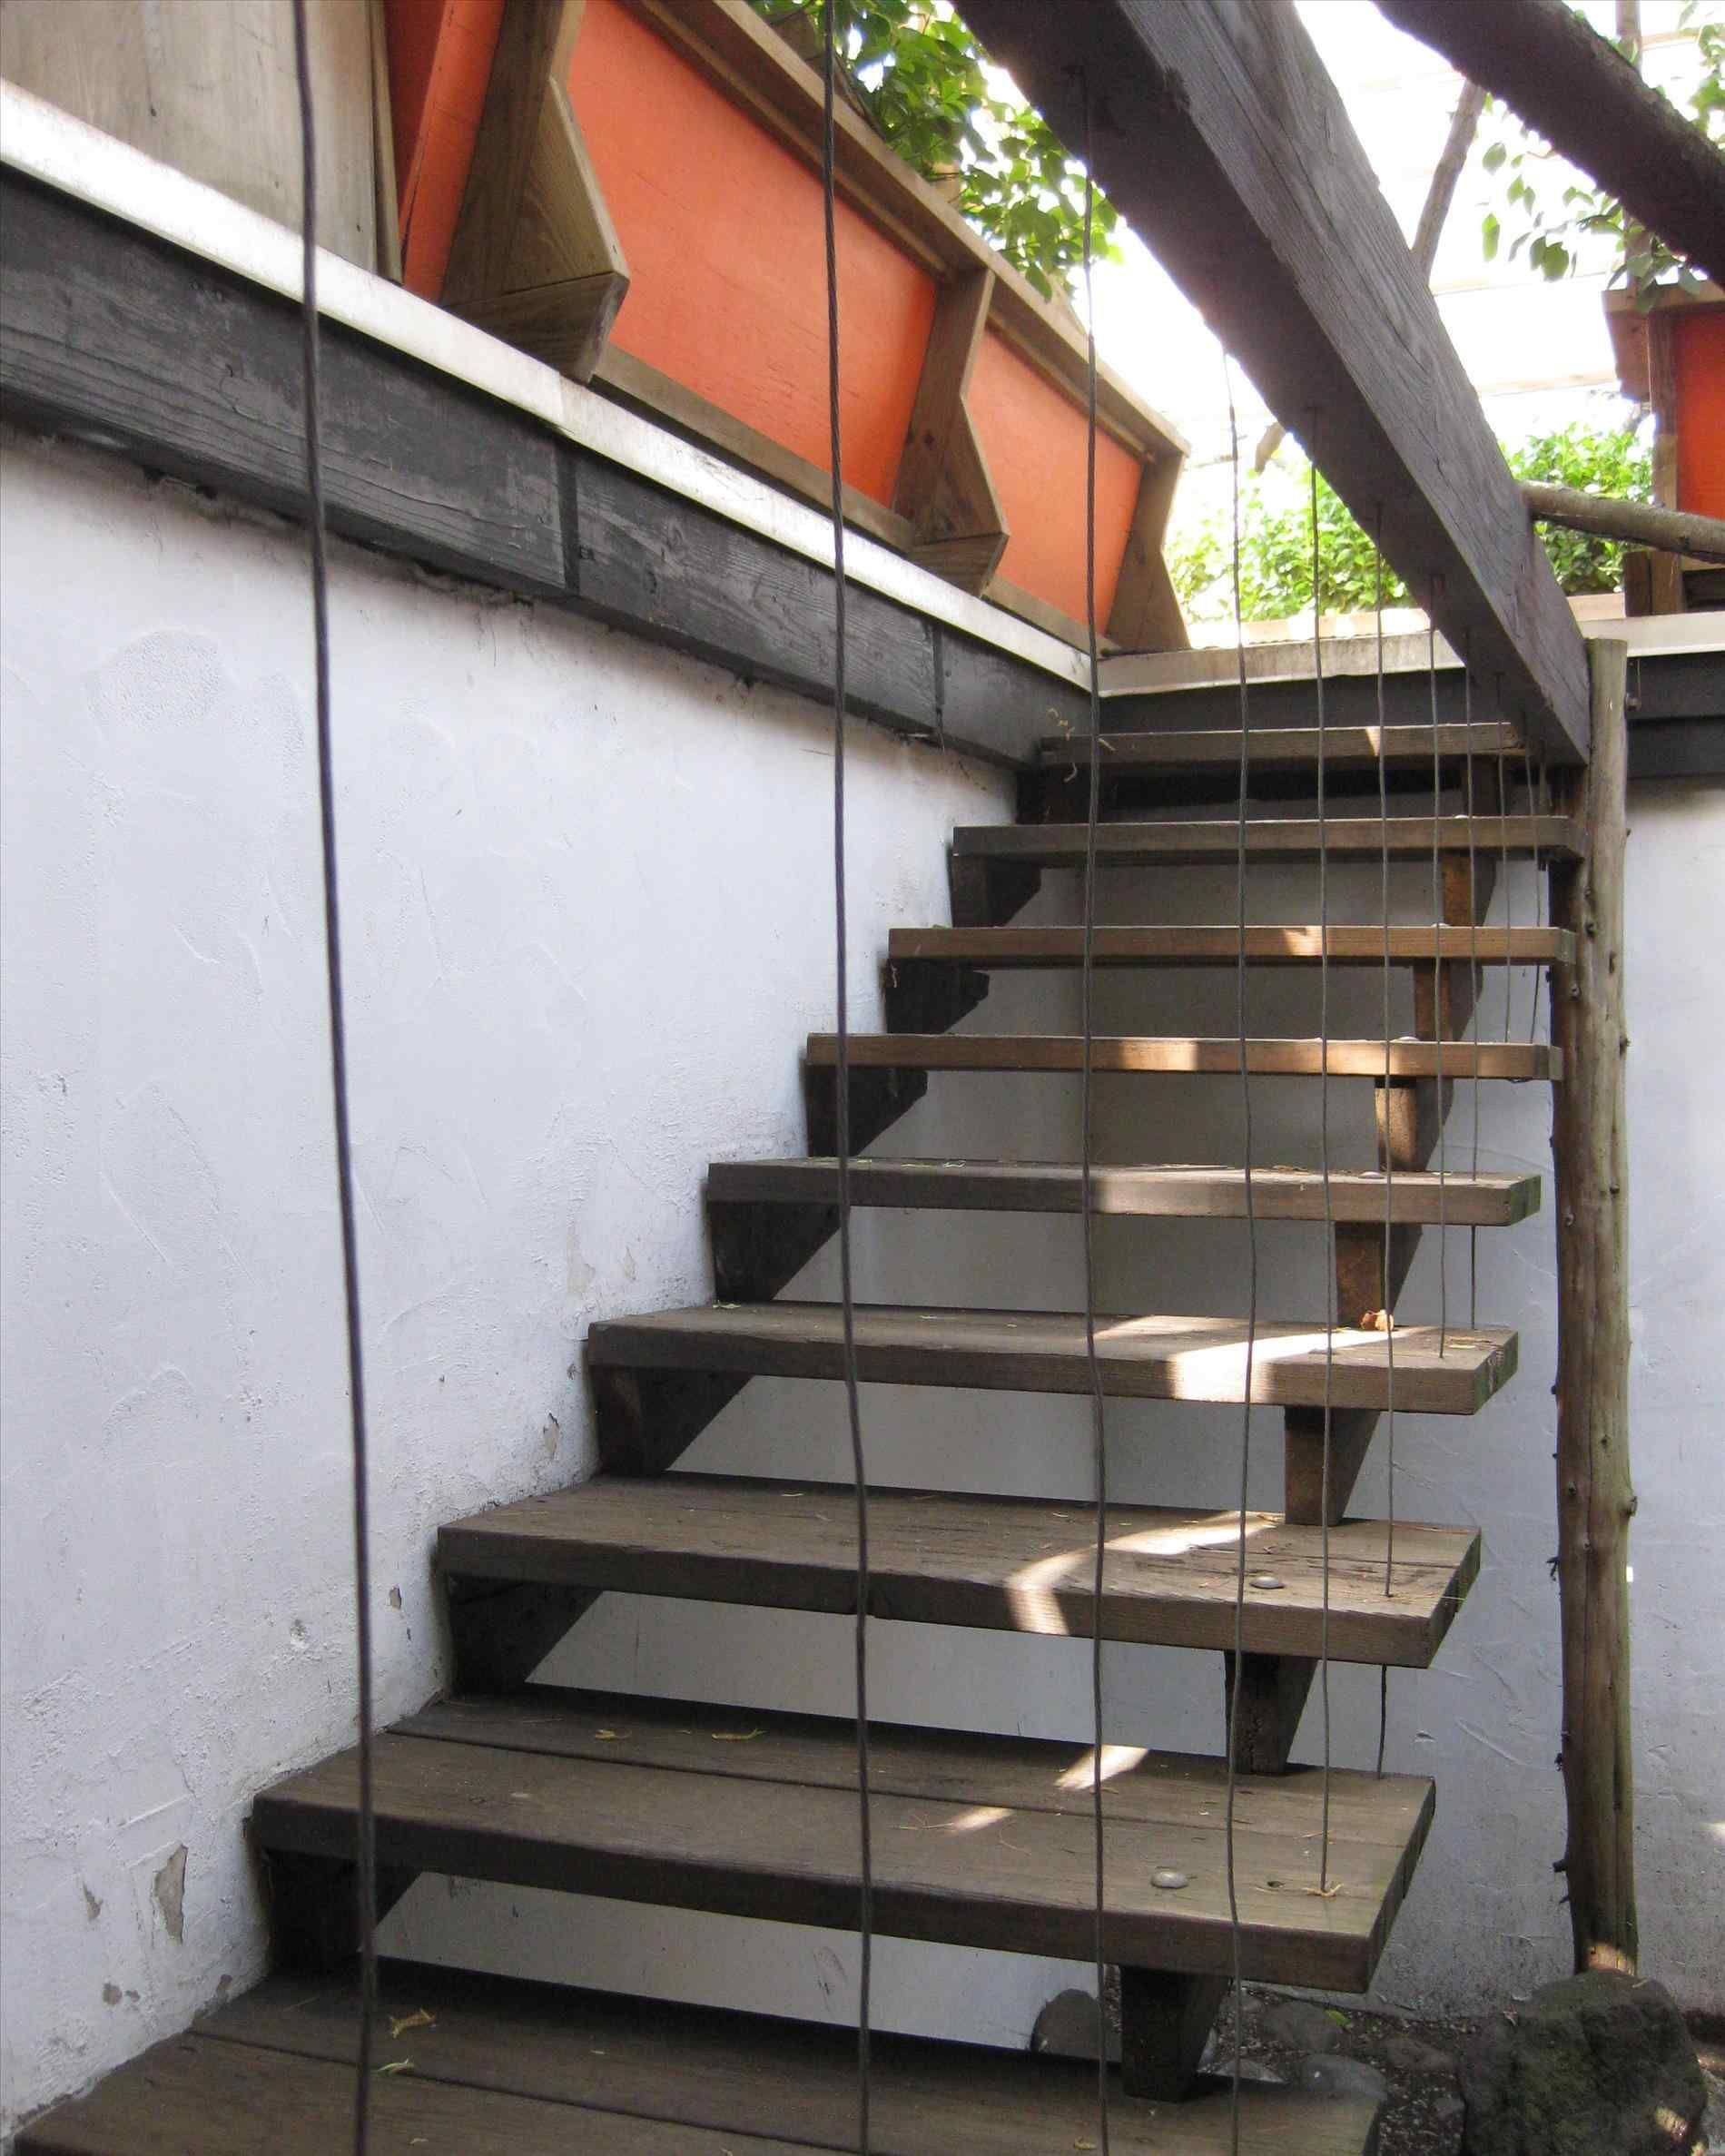 Inspirational Stairs Design: Top 20+ Fabulous Stair Outside Design Ideas For